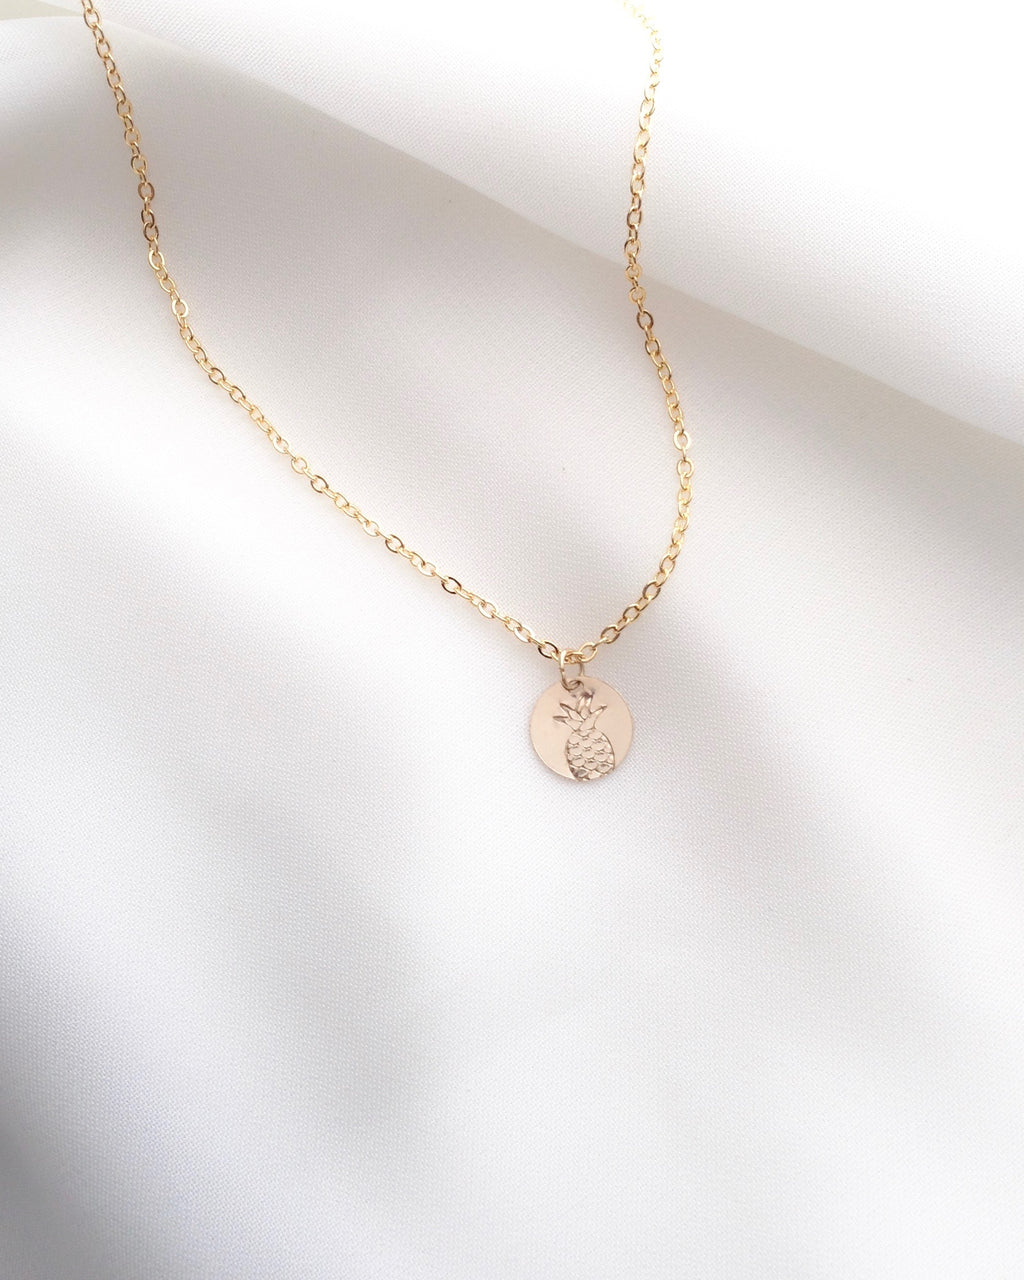 Pineapple Necklace in Gold Filled or Sterling Silver | Small Dainty Necklace | IB Jewelry